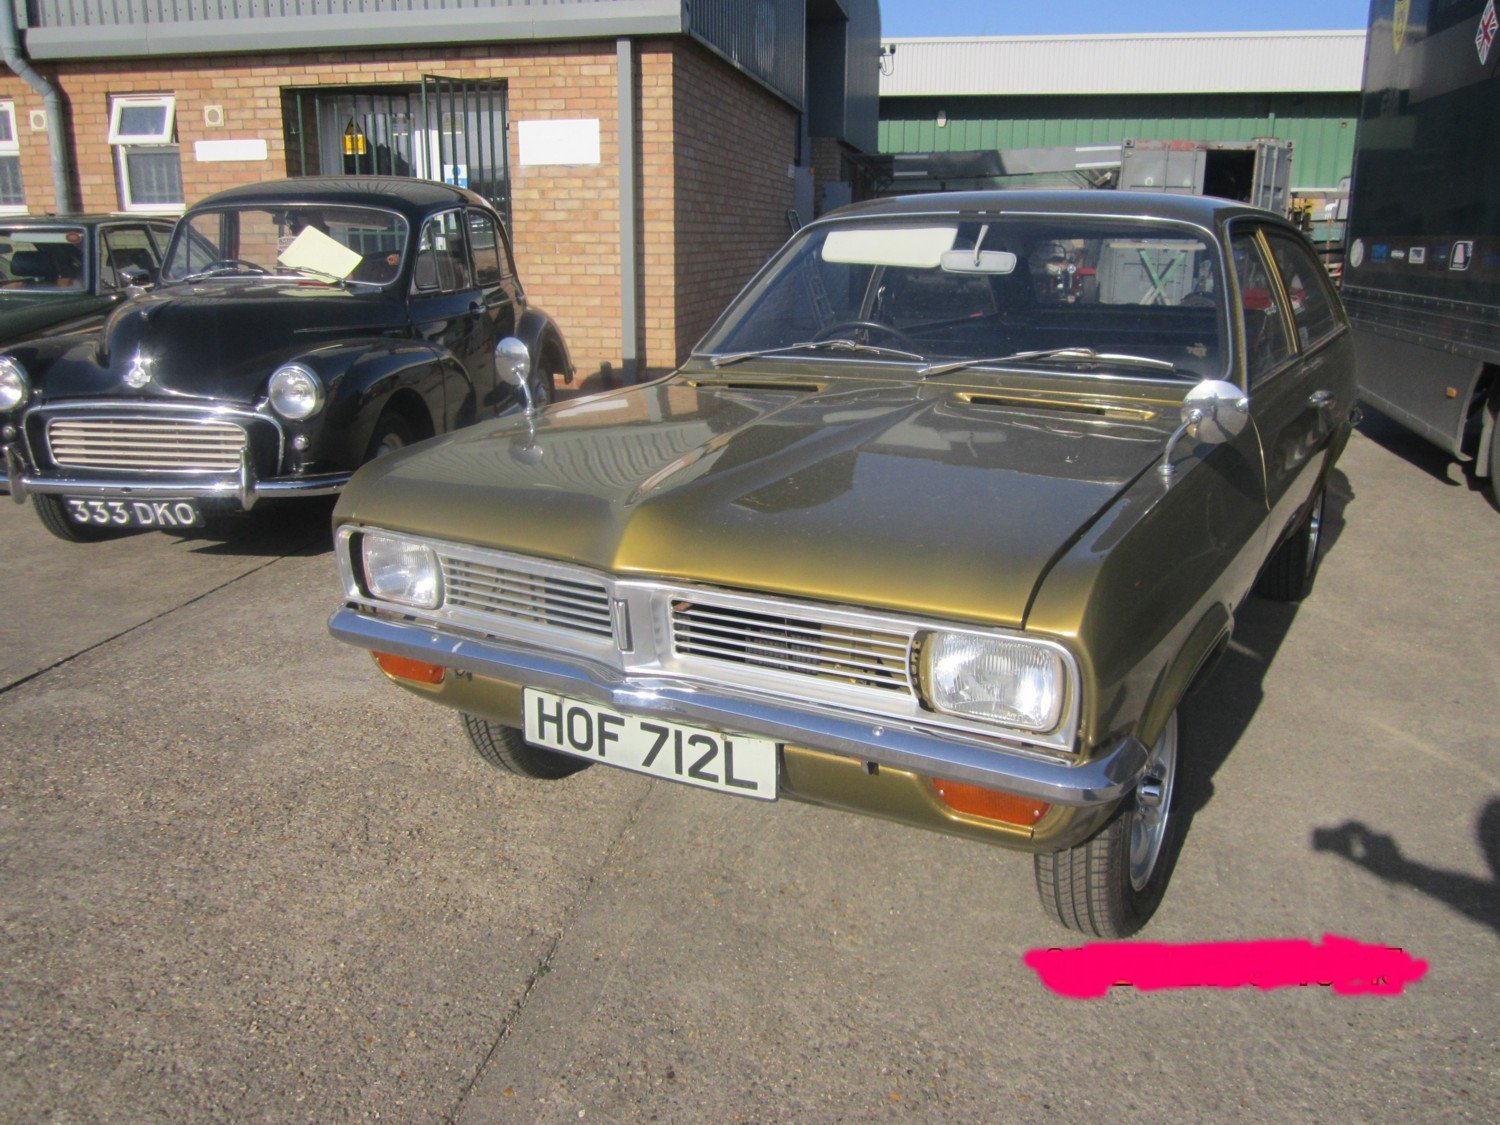 1973 Viva estate reduced For Sale (picture 4 of 6)